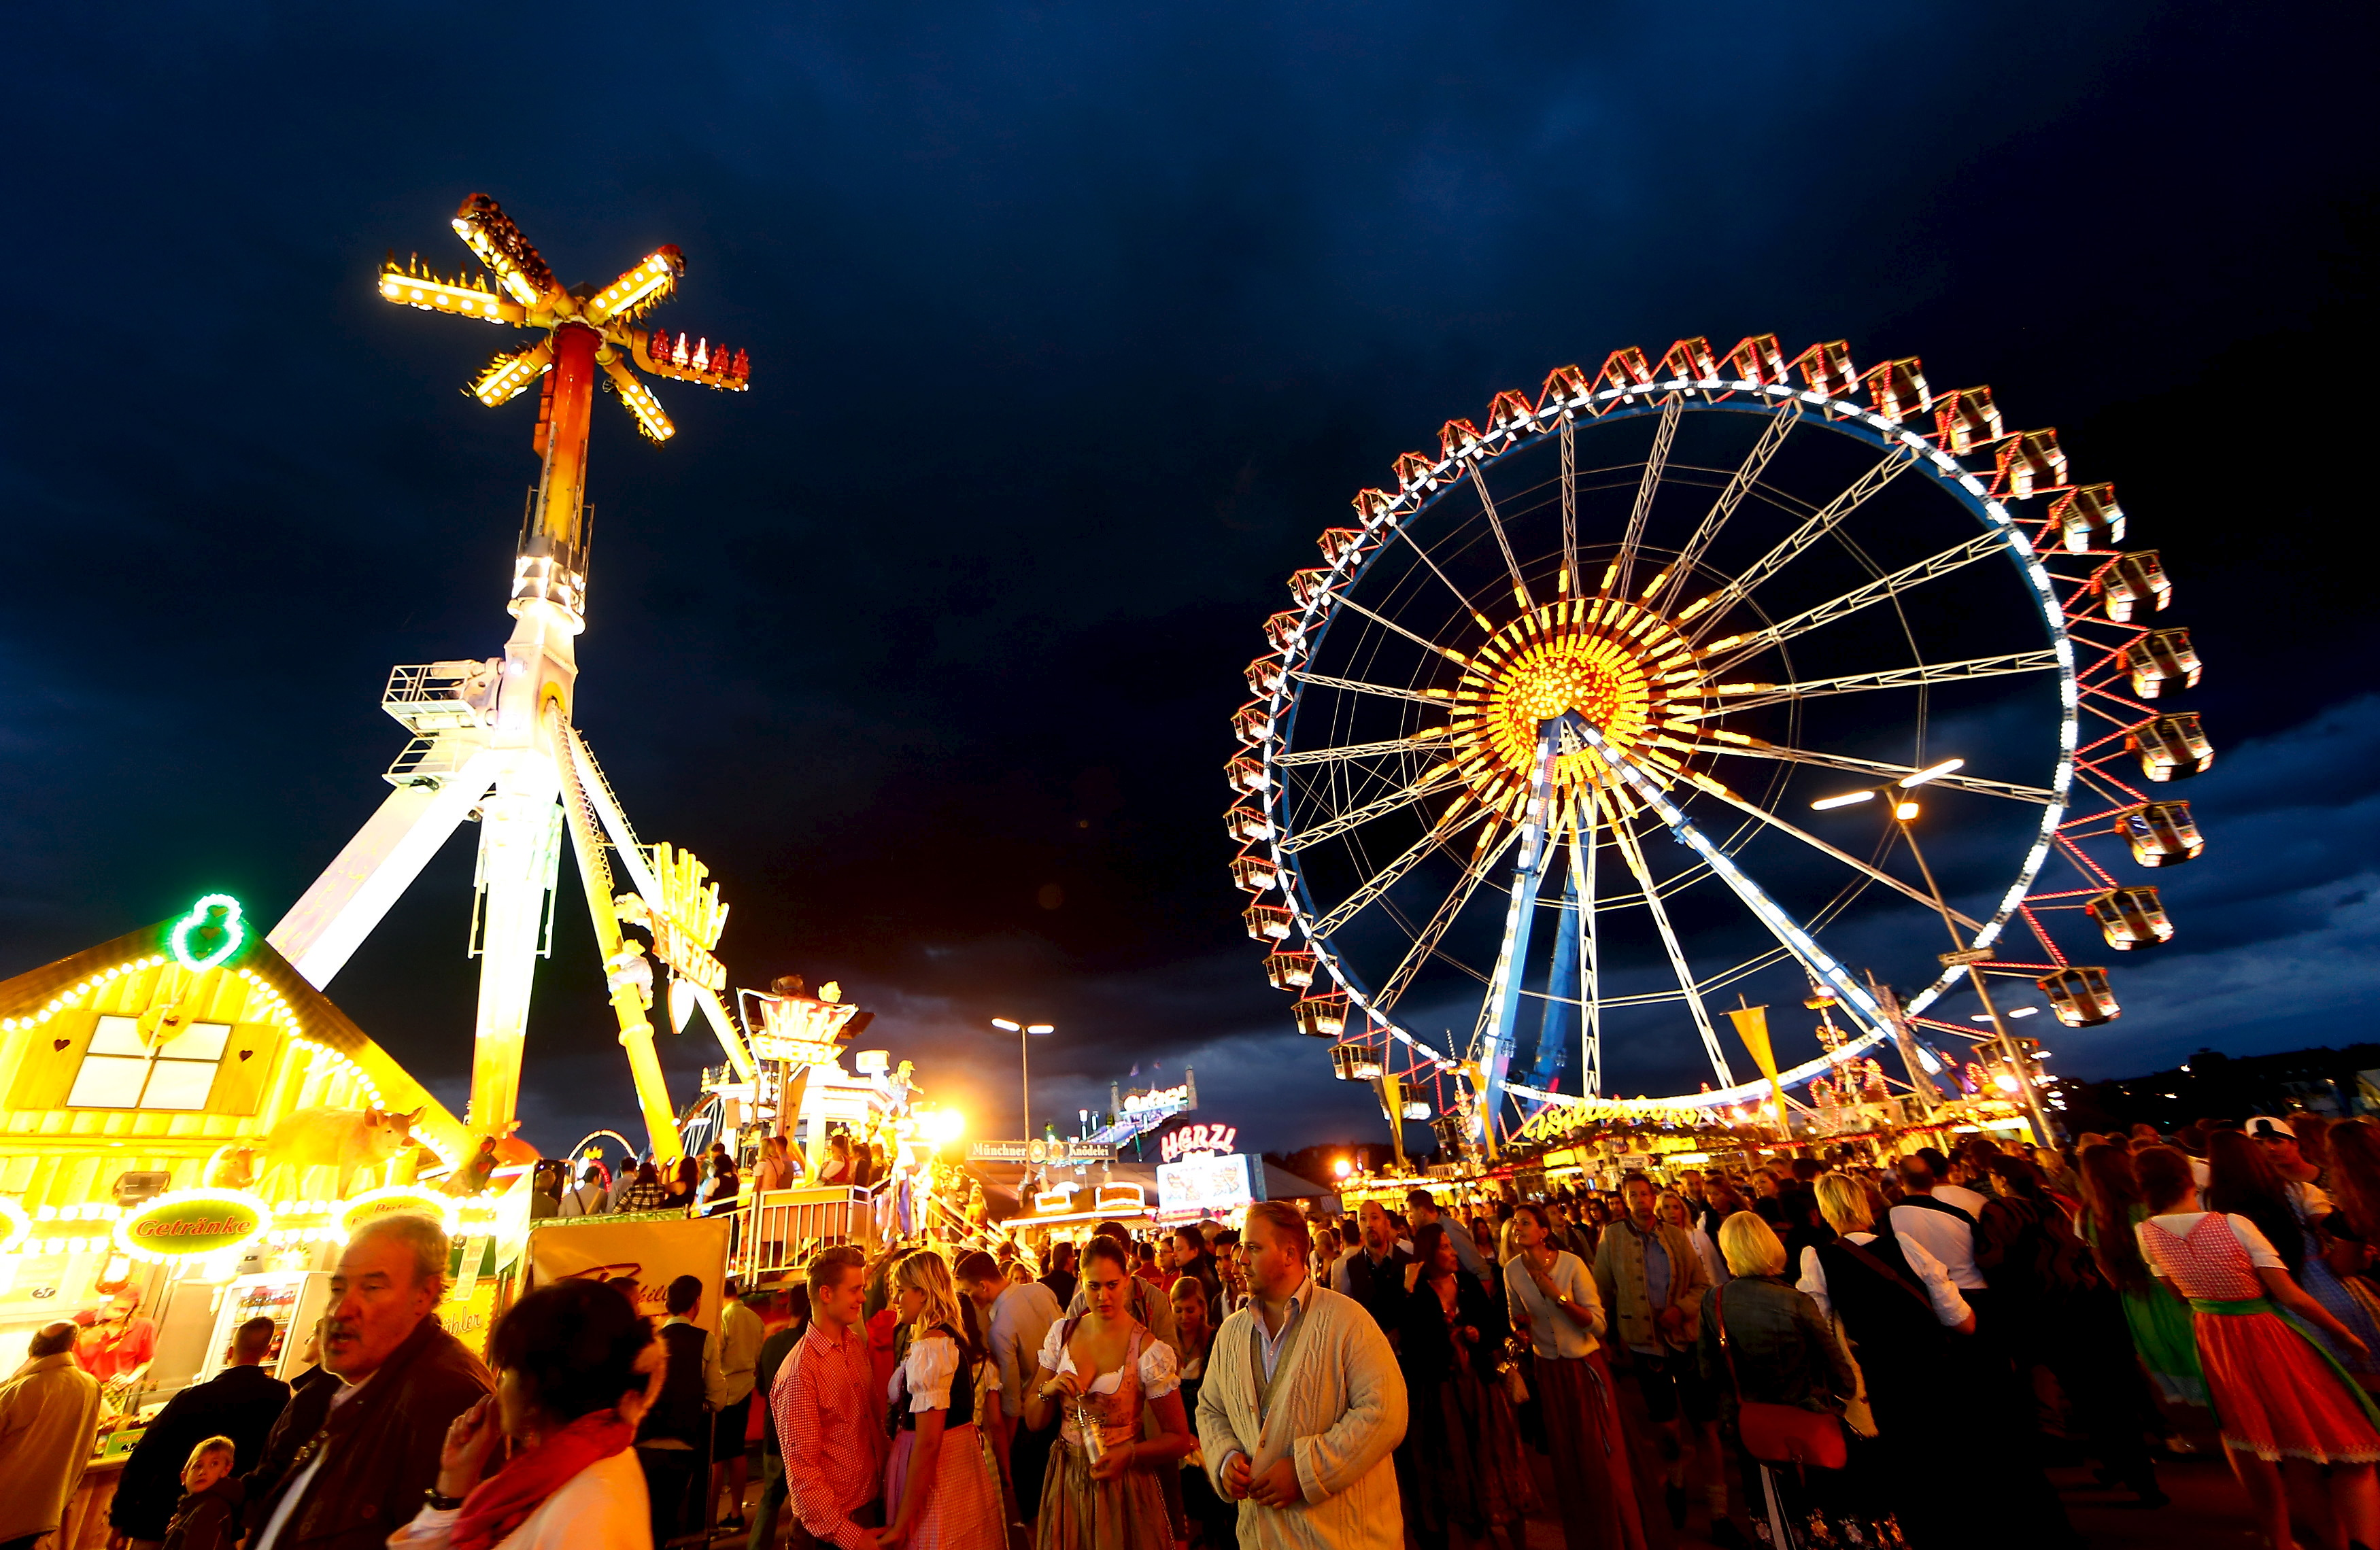 Visitors ride a ferris wheel during the opening day of the 182nd Oktoberfest in Munich, Germany, September 19, 2015. Millions of beer drinkers from around the world will come to the Bavarian capital over the next two weeks for Oktoberfest, which starts today and runs until October 4, 2015. REUTERS/Michael Dalder - RTS1WLR